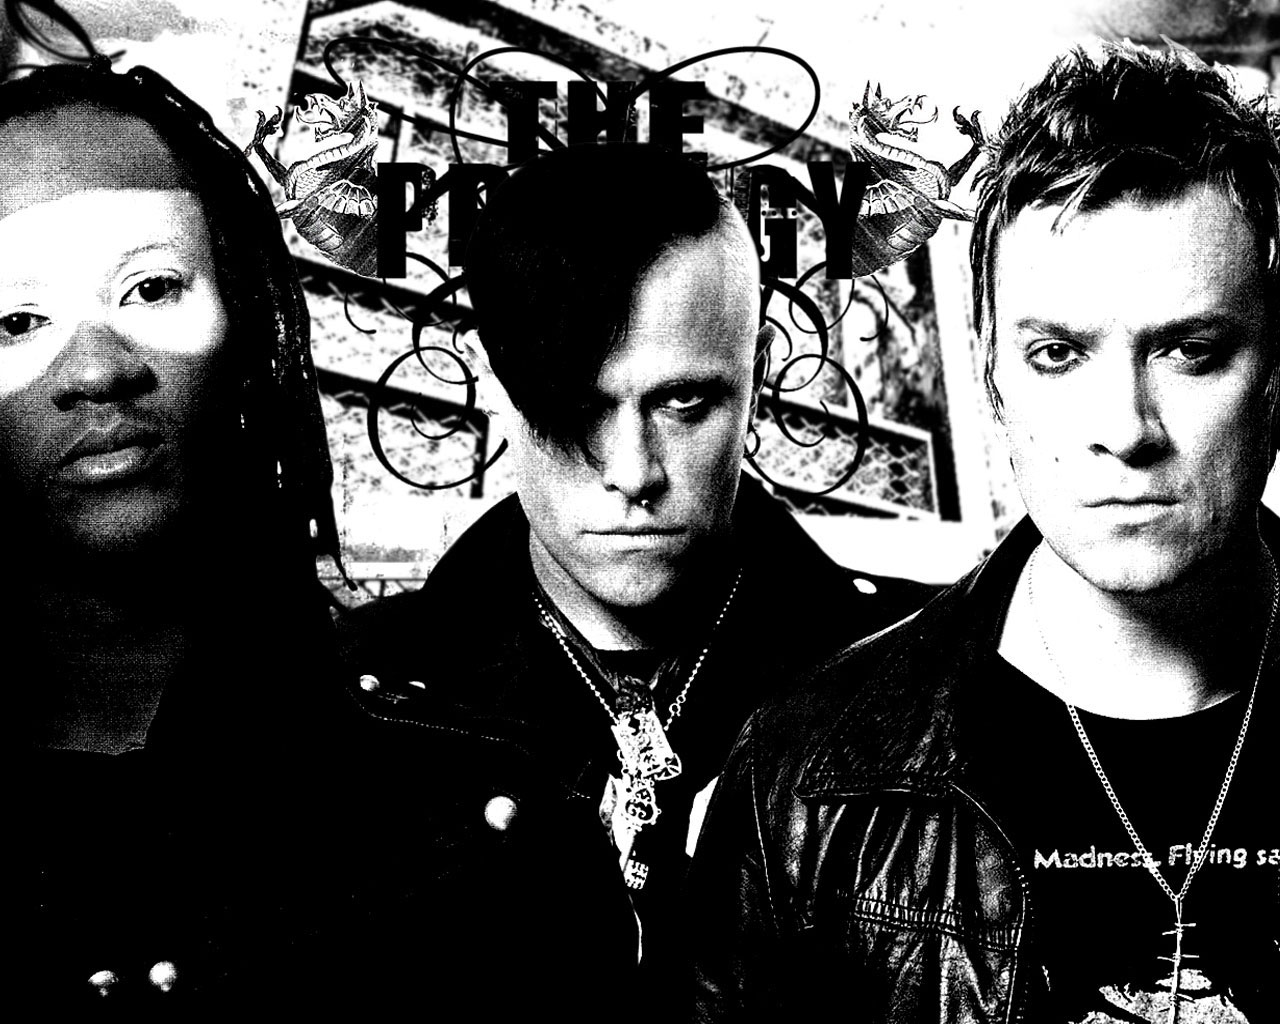 High Resolution Wallpaper   The Prodigy 1280x1024 px